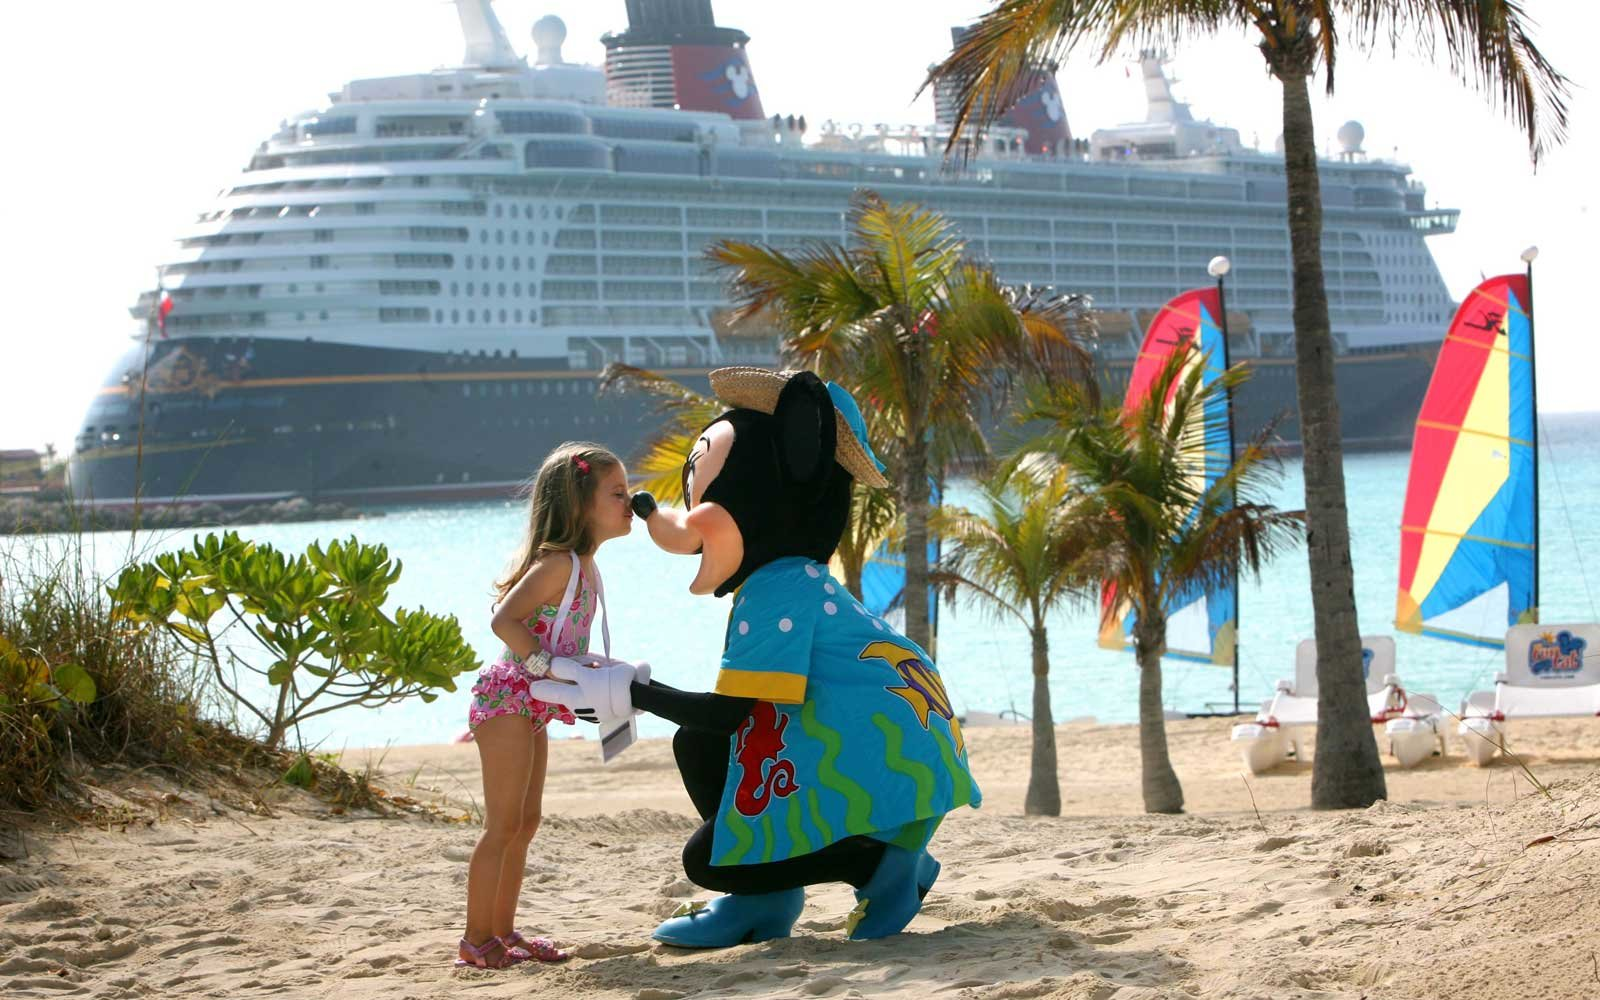 The Caribbean Island That Disney Fans Can't Get Enough Of